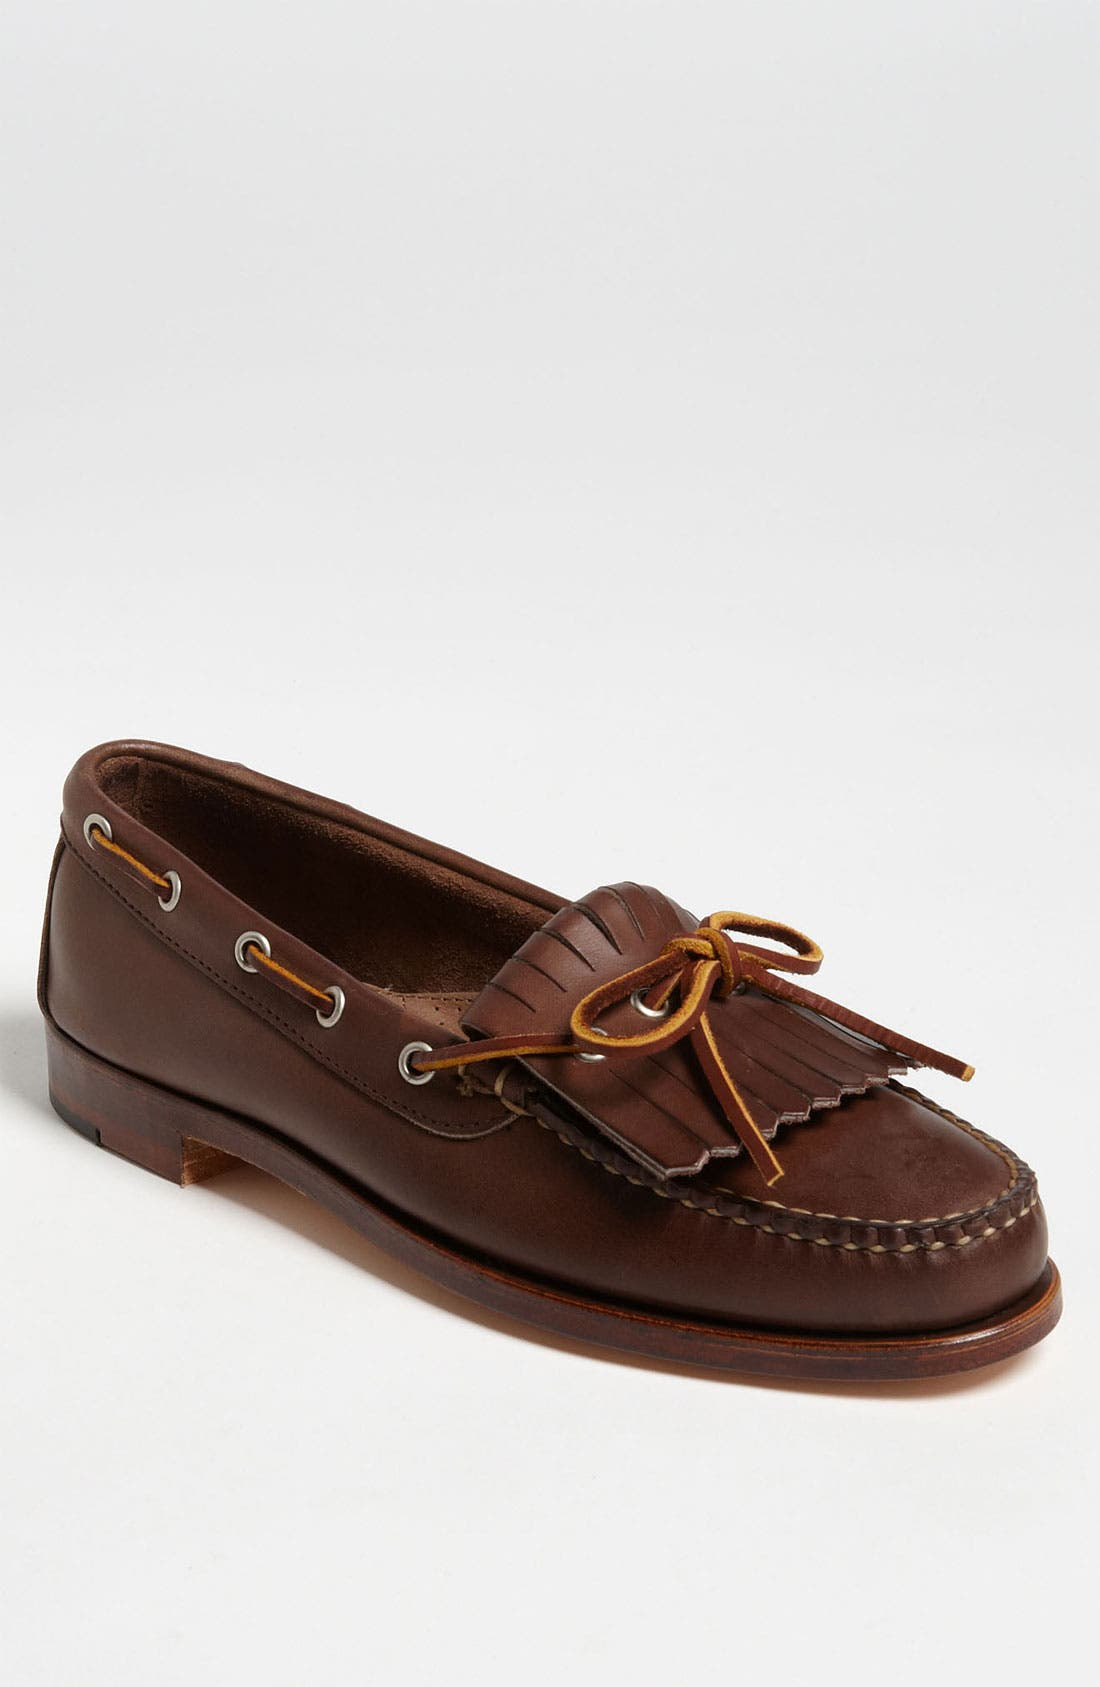 Main Image - Eastland Made in Maine 'Ellsworth USA' Kiltie Loafer